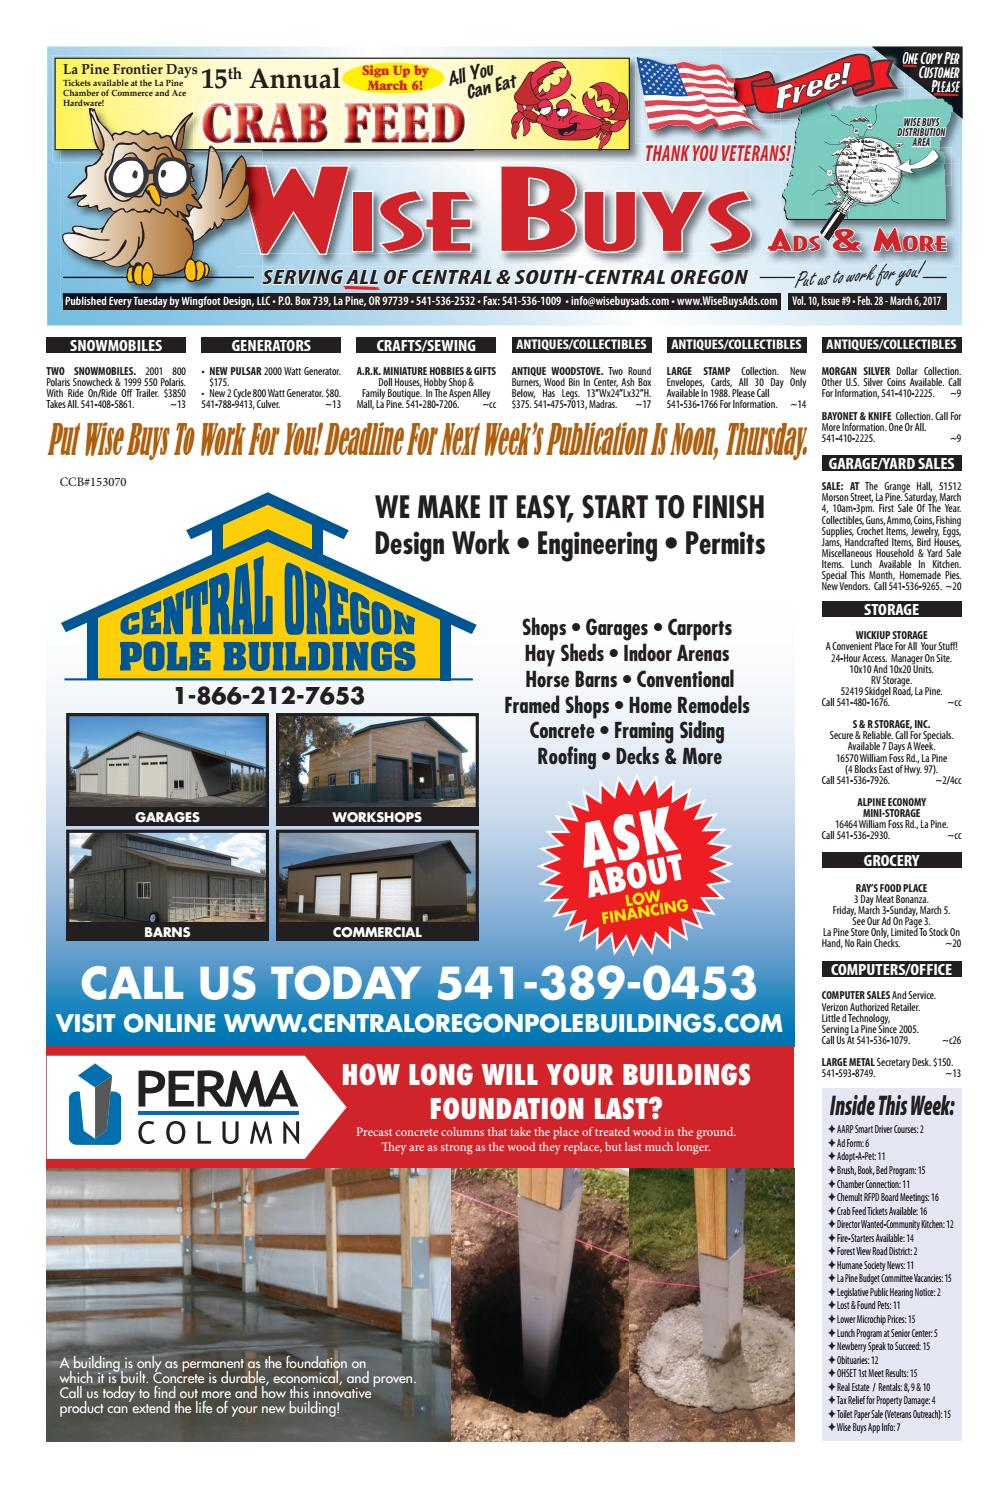 Wise Buys 02-28-17 by Wise Buys Ads & More - Issuu